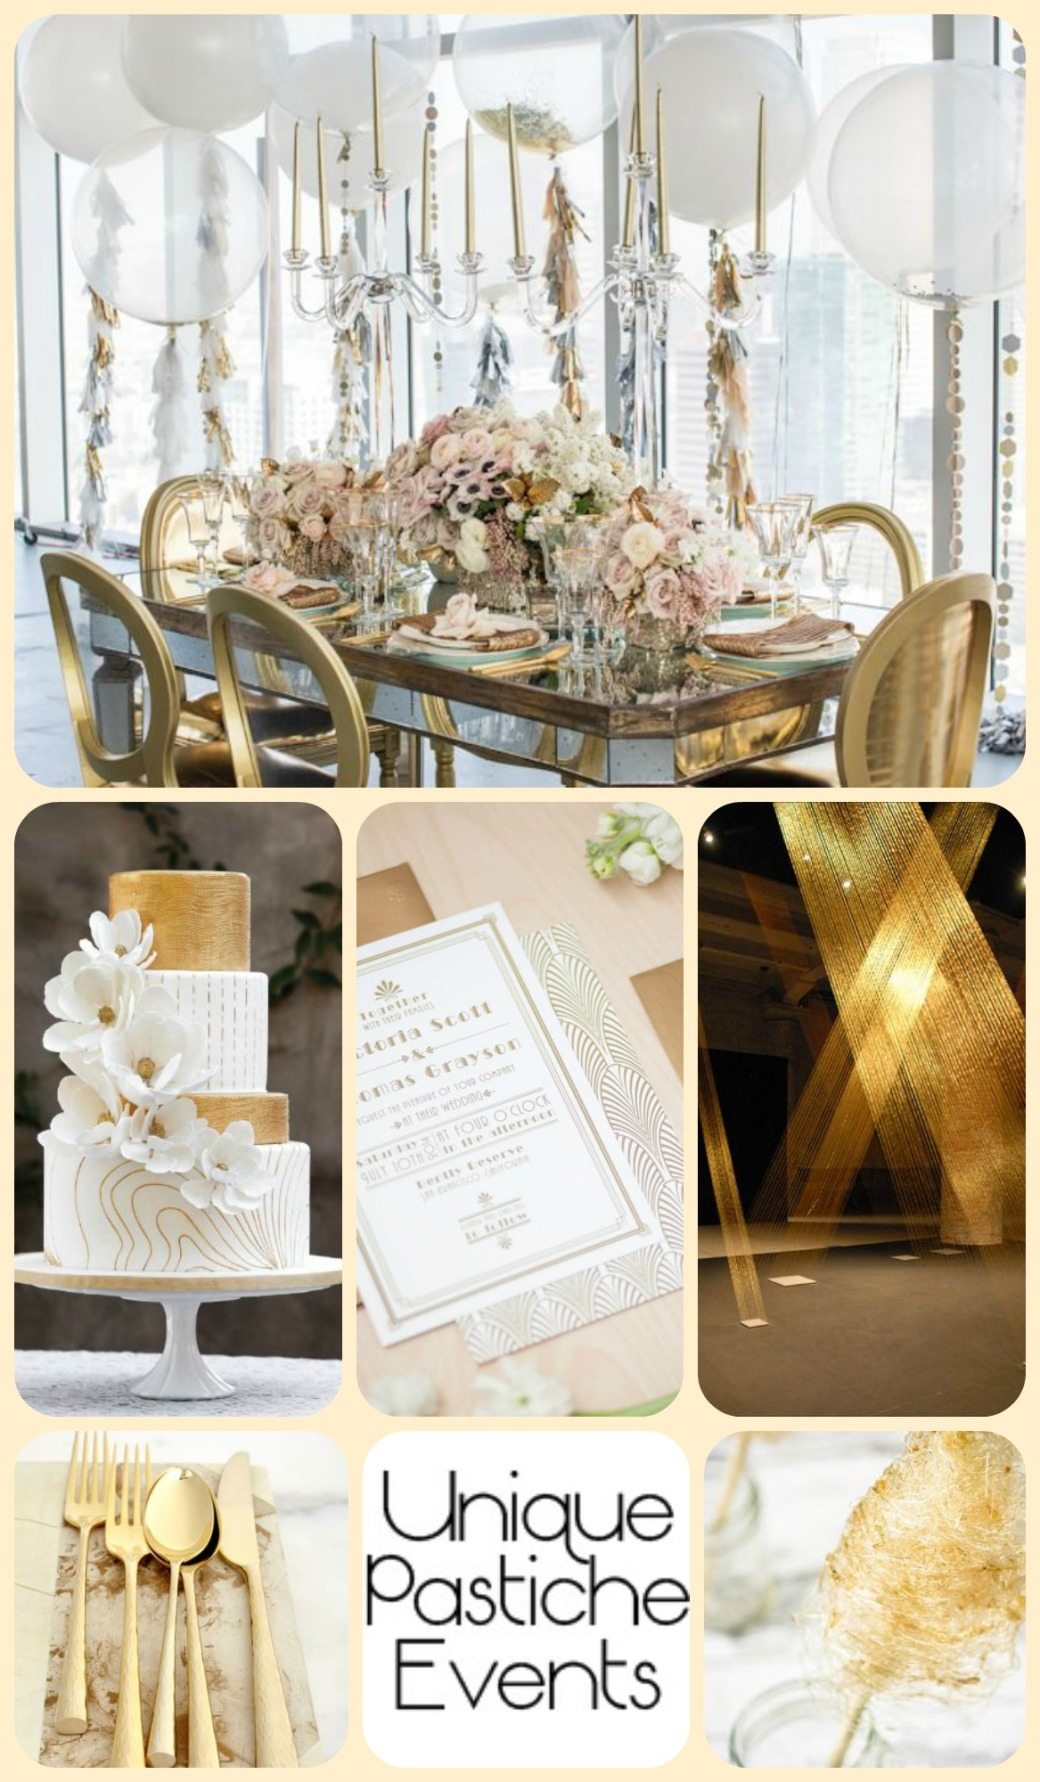 Modern Gold + White Celebration Inspiration Board See the full post: https://uniquepasticheevents.com/2015/06/24/modern-gold-white-celebration/